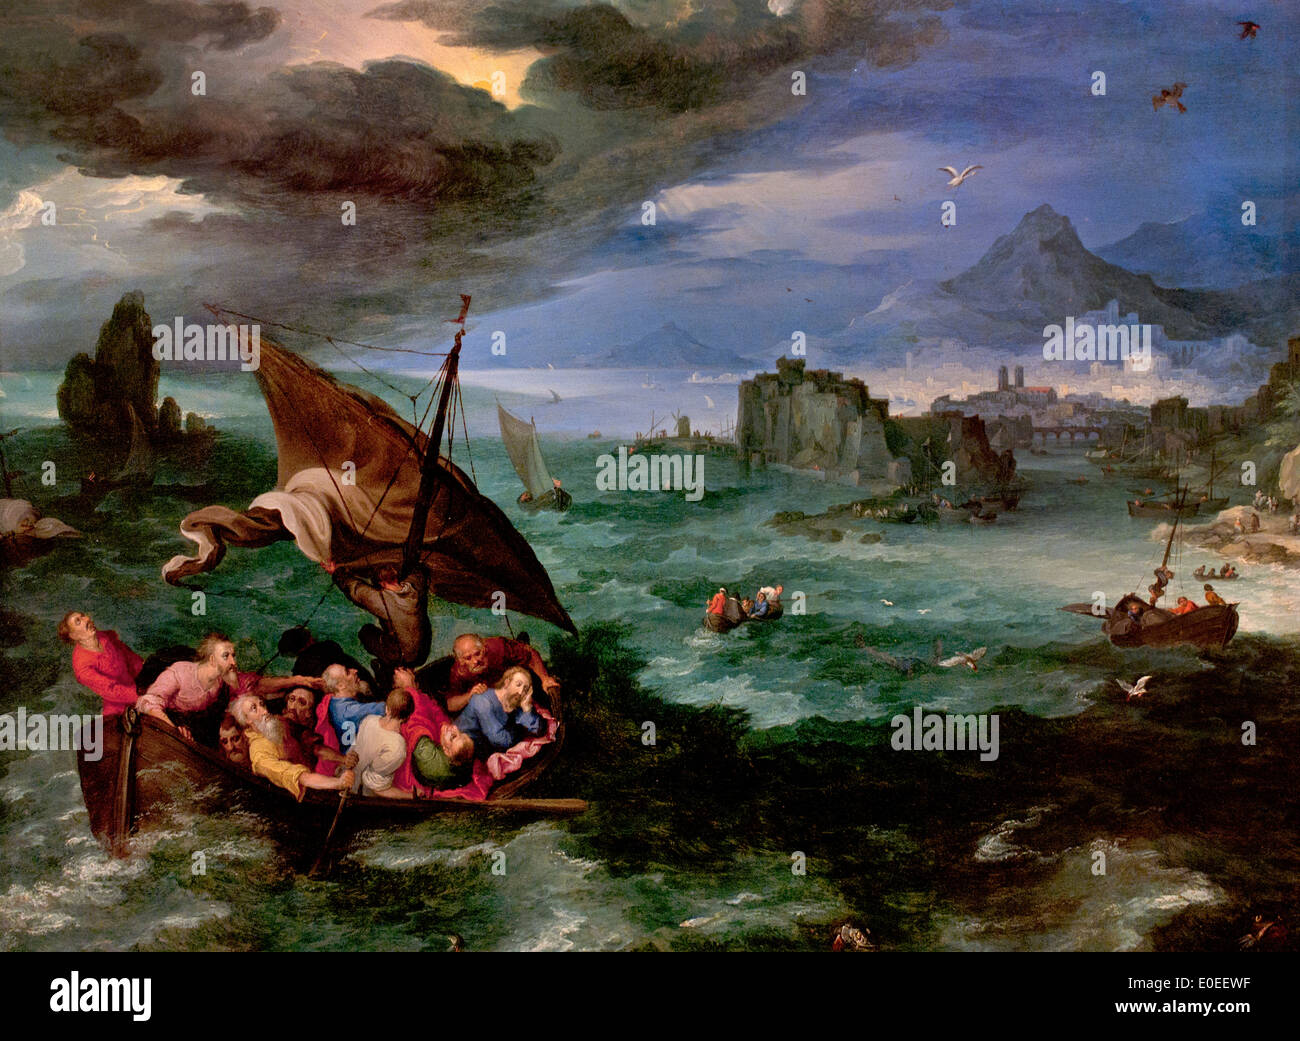 Christ in the storm on the sea of galilee jan brueghel the elder christ in the storm on the sea of galilee jan brueghel the elder 1568 1625 flemish belgian belgium publicscrutiny Images